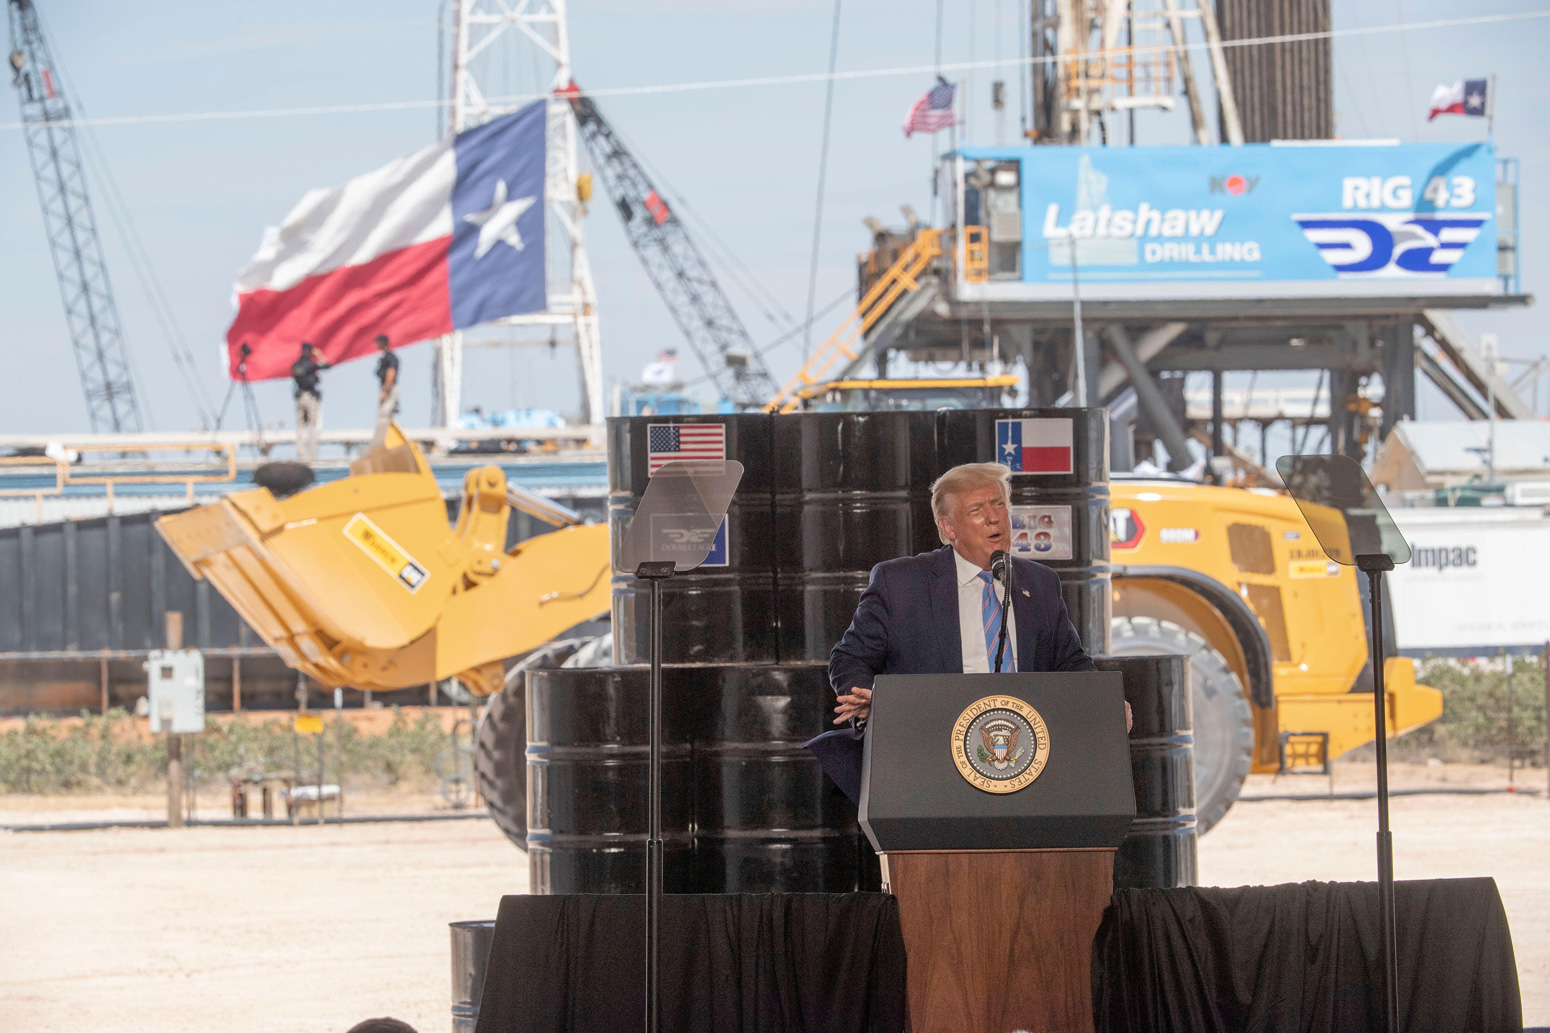 Donald Trump talks at Latshaw 9 drilling rig on the Double Eagle well site, Texas.